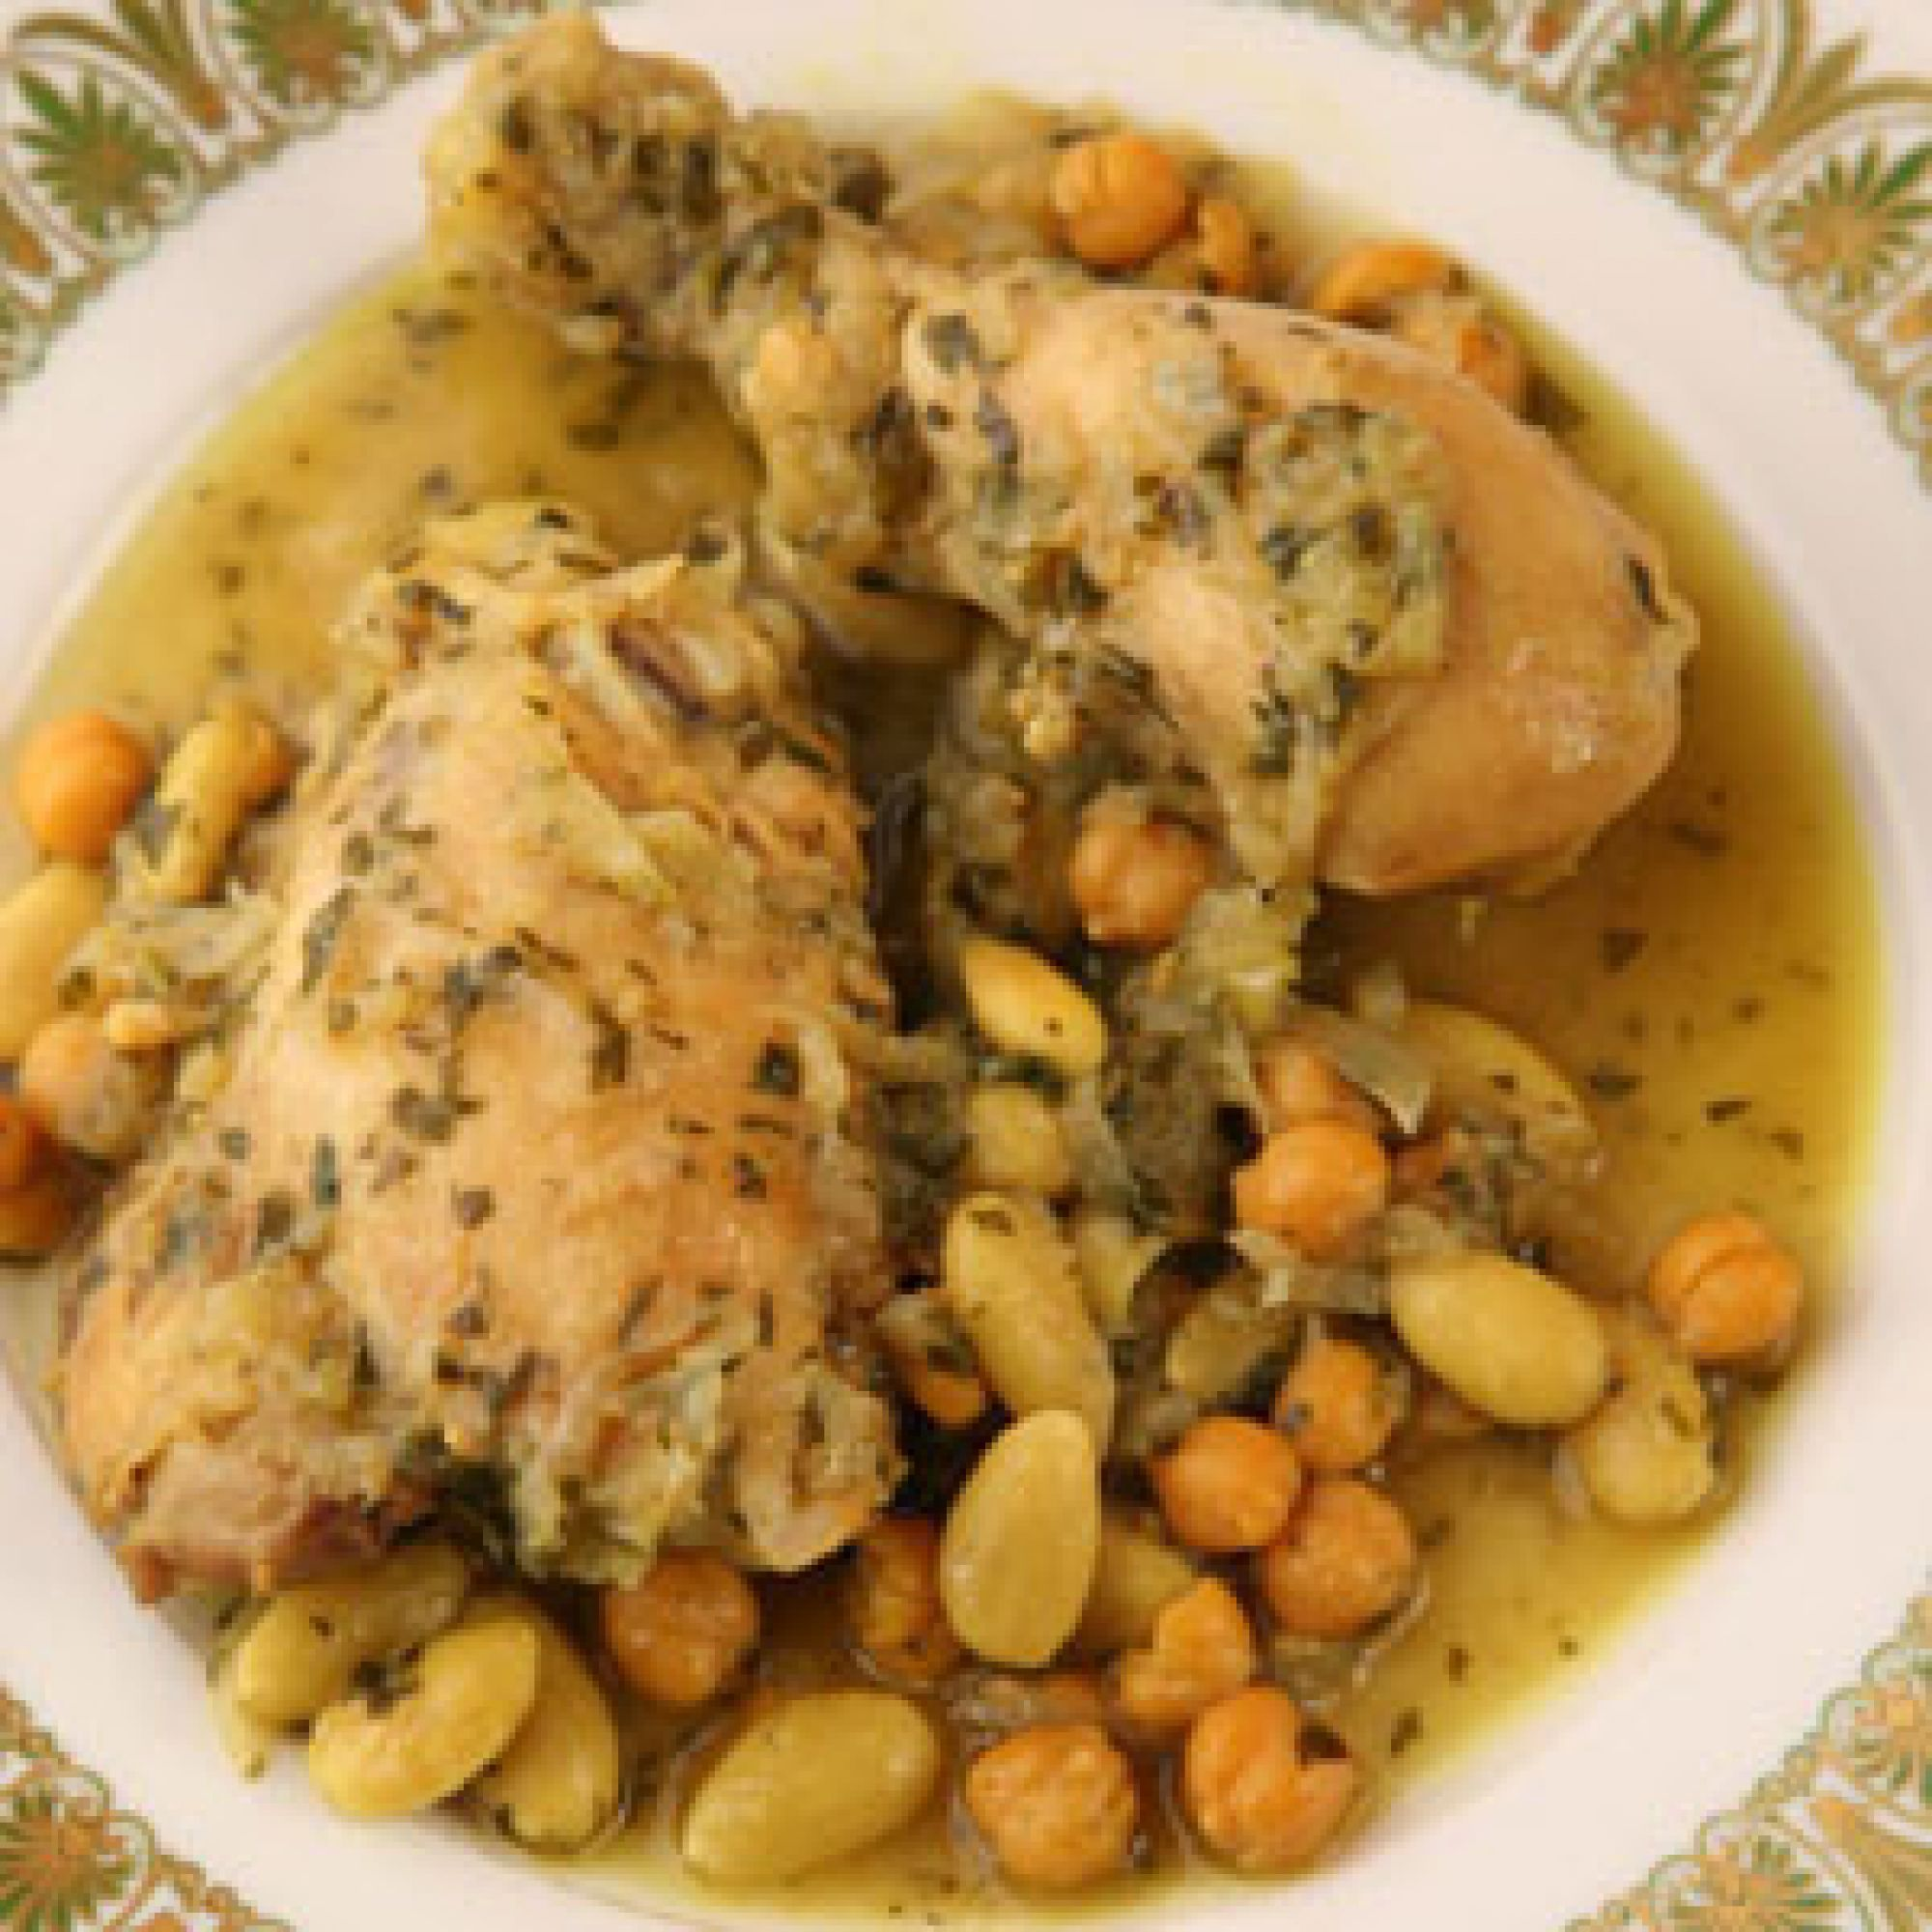 Moroccan chicken stew with almonds and chickpeas djej kdra touimiya moroccan chicken stew with almonds and chickpeas djej kdra touimiya chicken tagine recipe forumfinder